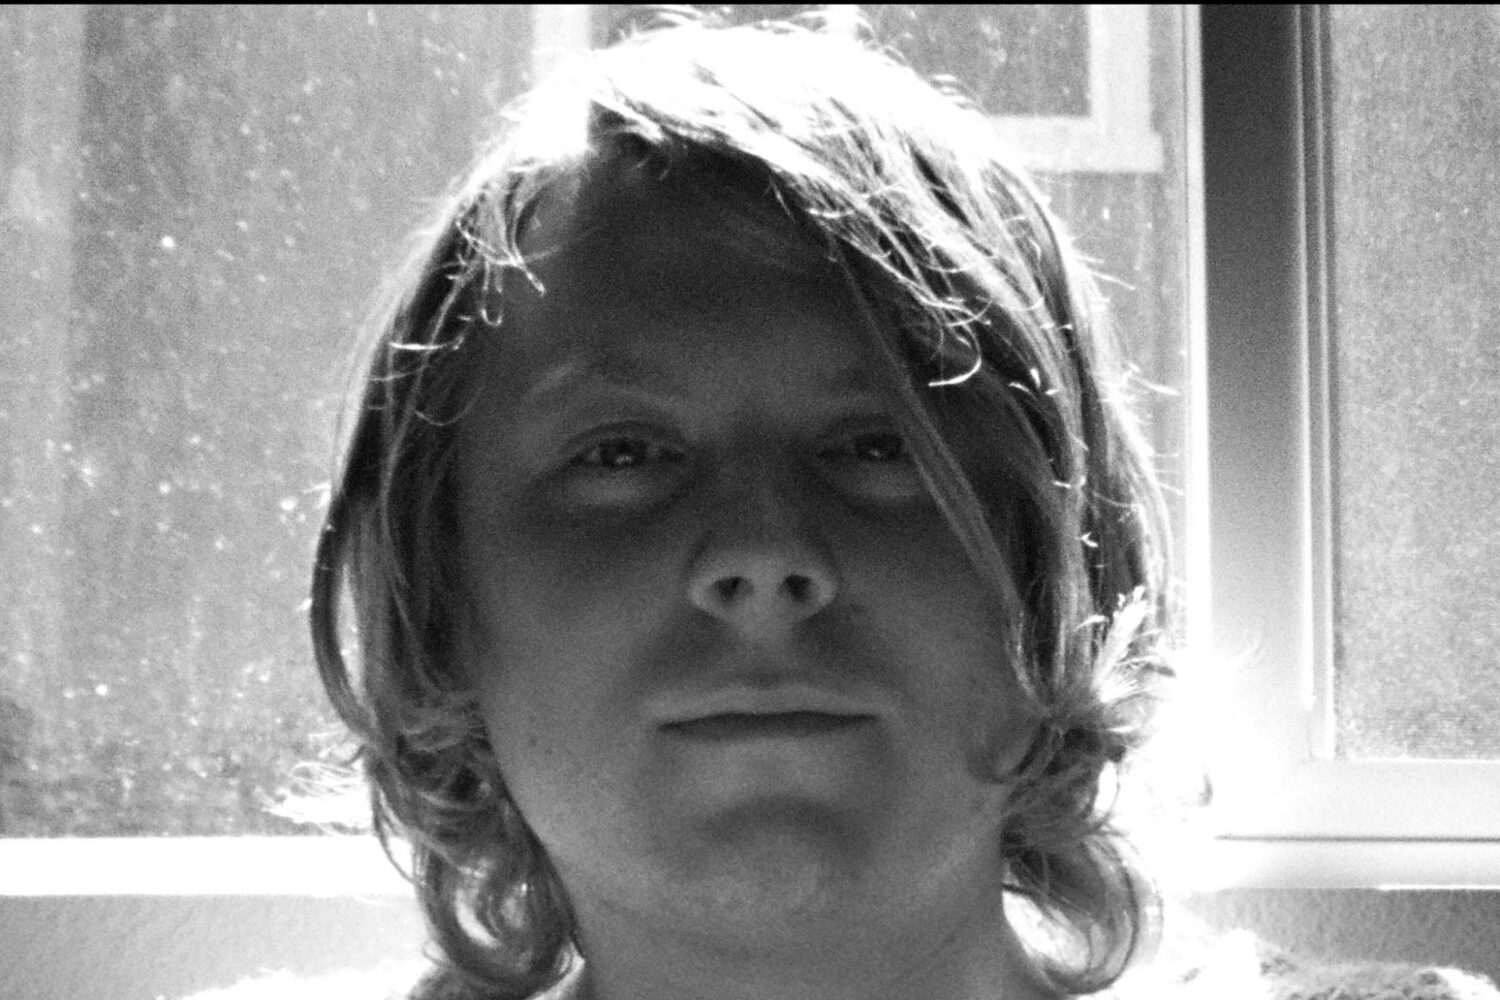 Ty Segall shares new track 'Meaning'